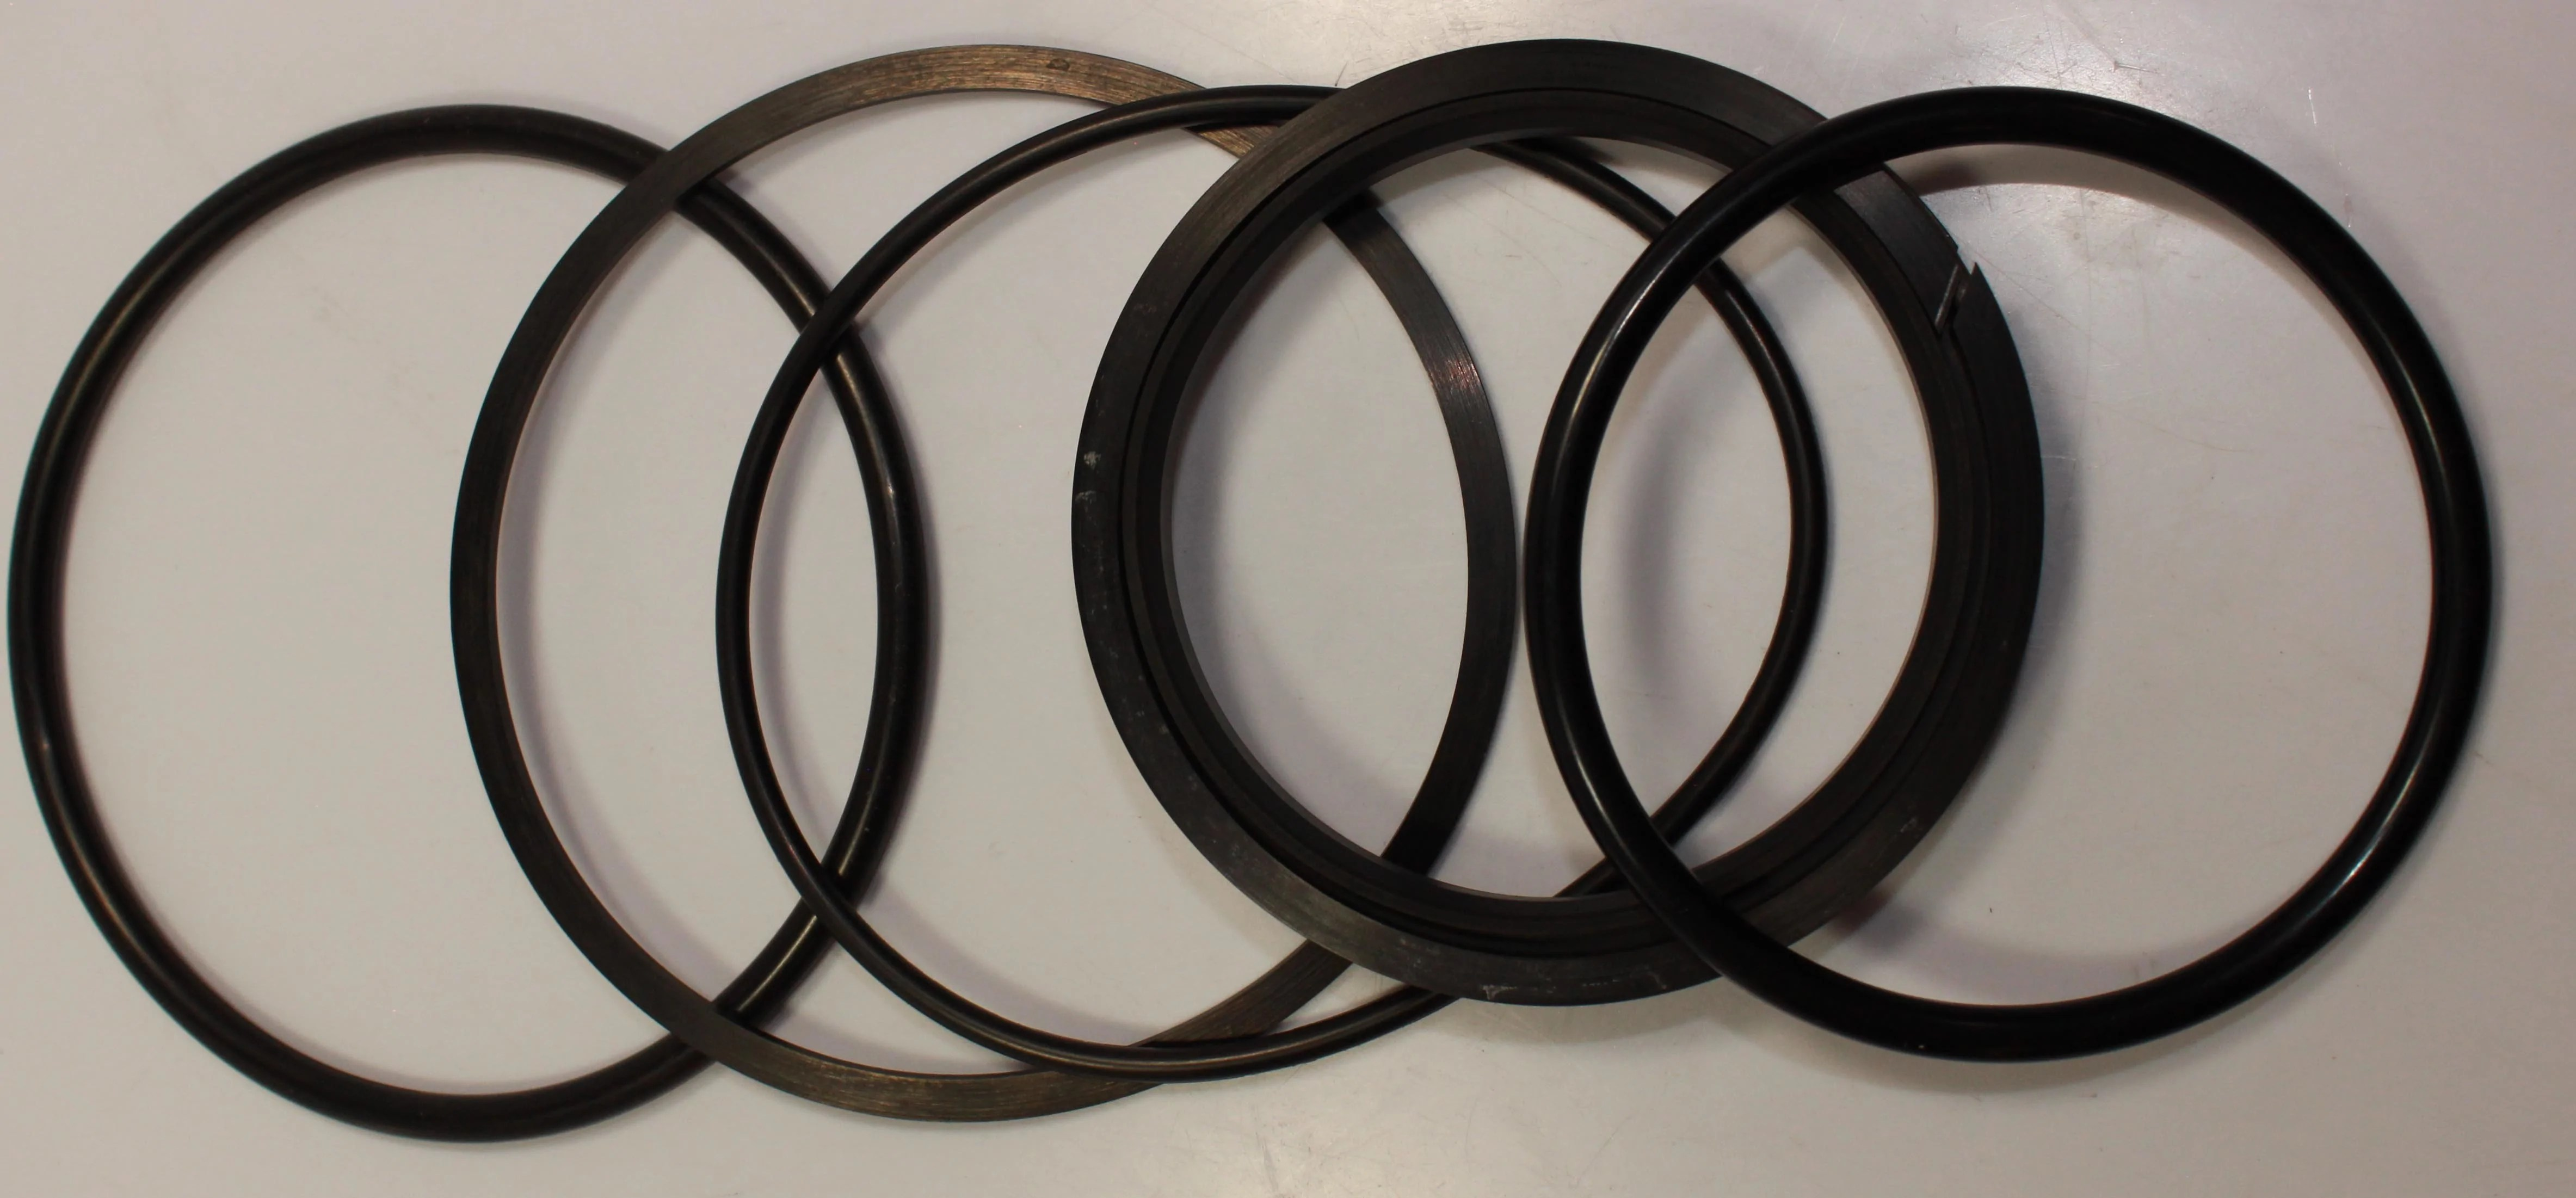 john deere re20430 hydraulic cylinder seal kit tornado heavy equipment parts [ 4734 x 2202 Pixel ]